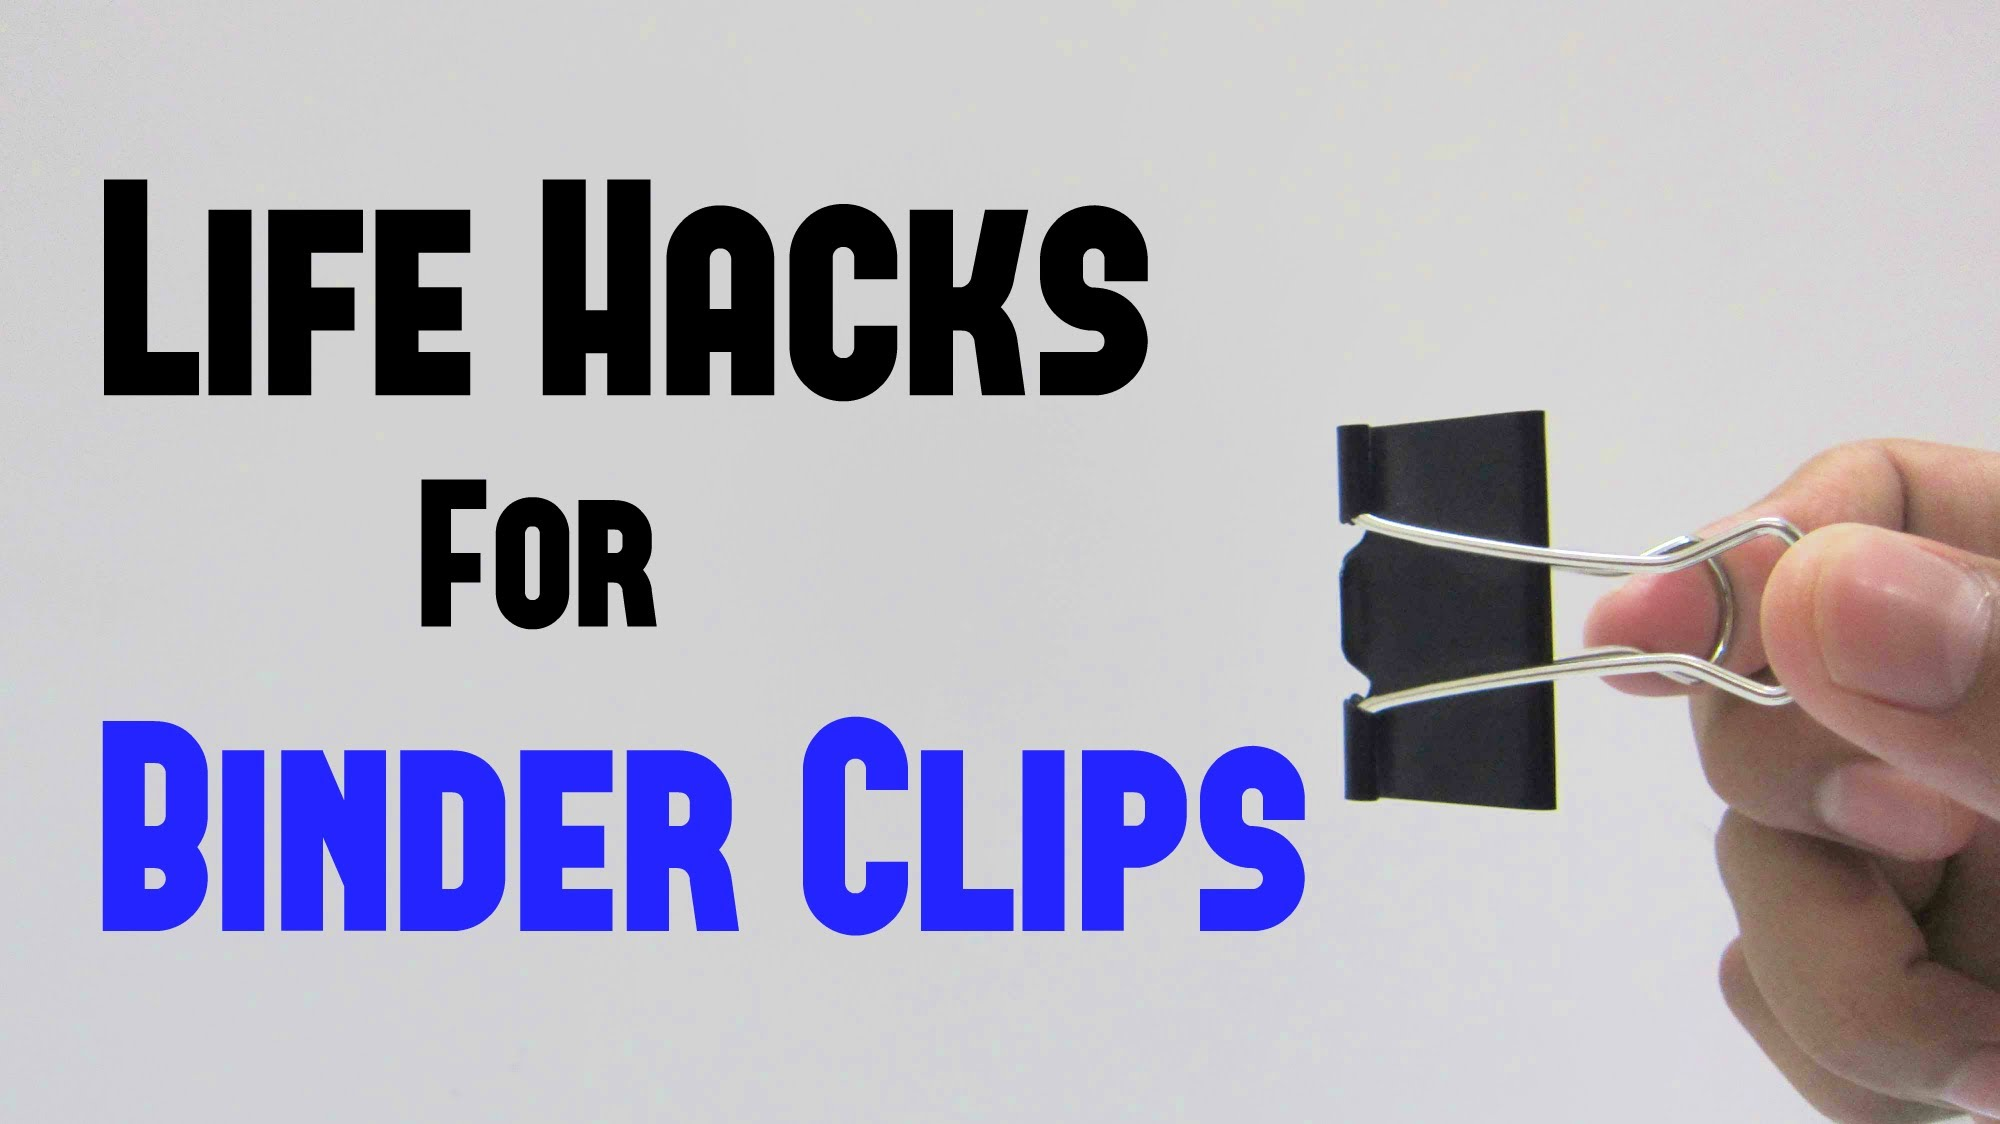 15 useful things you can do with binder clips